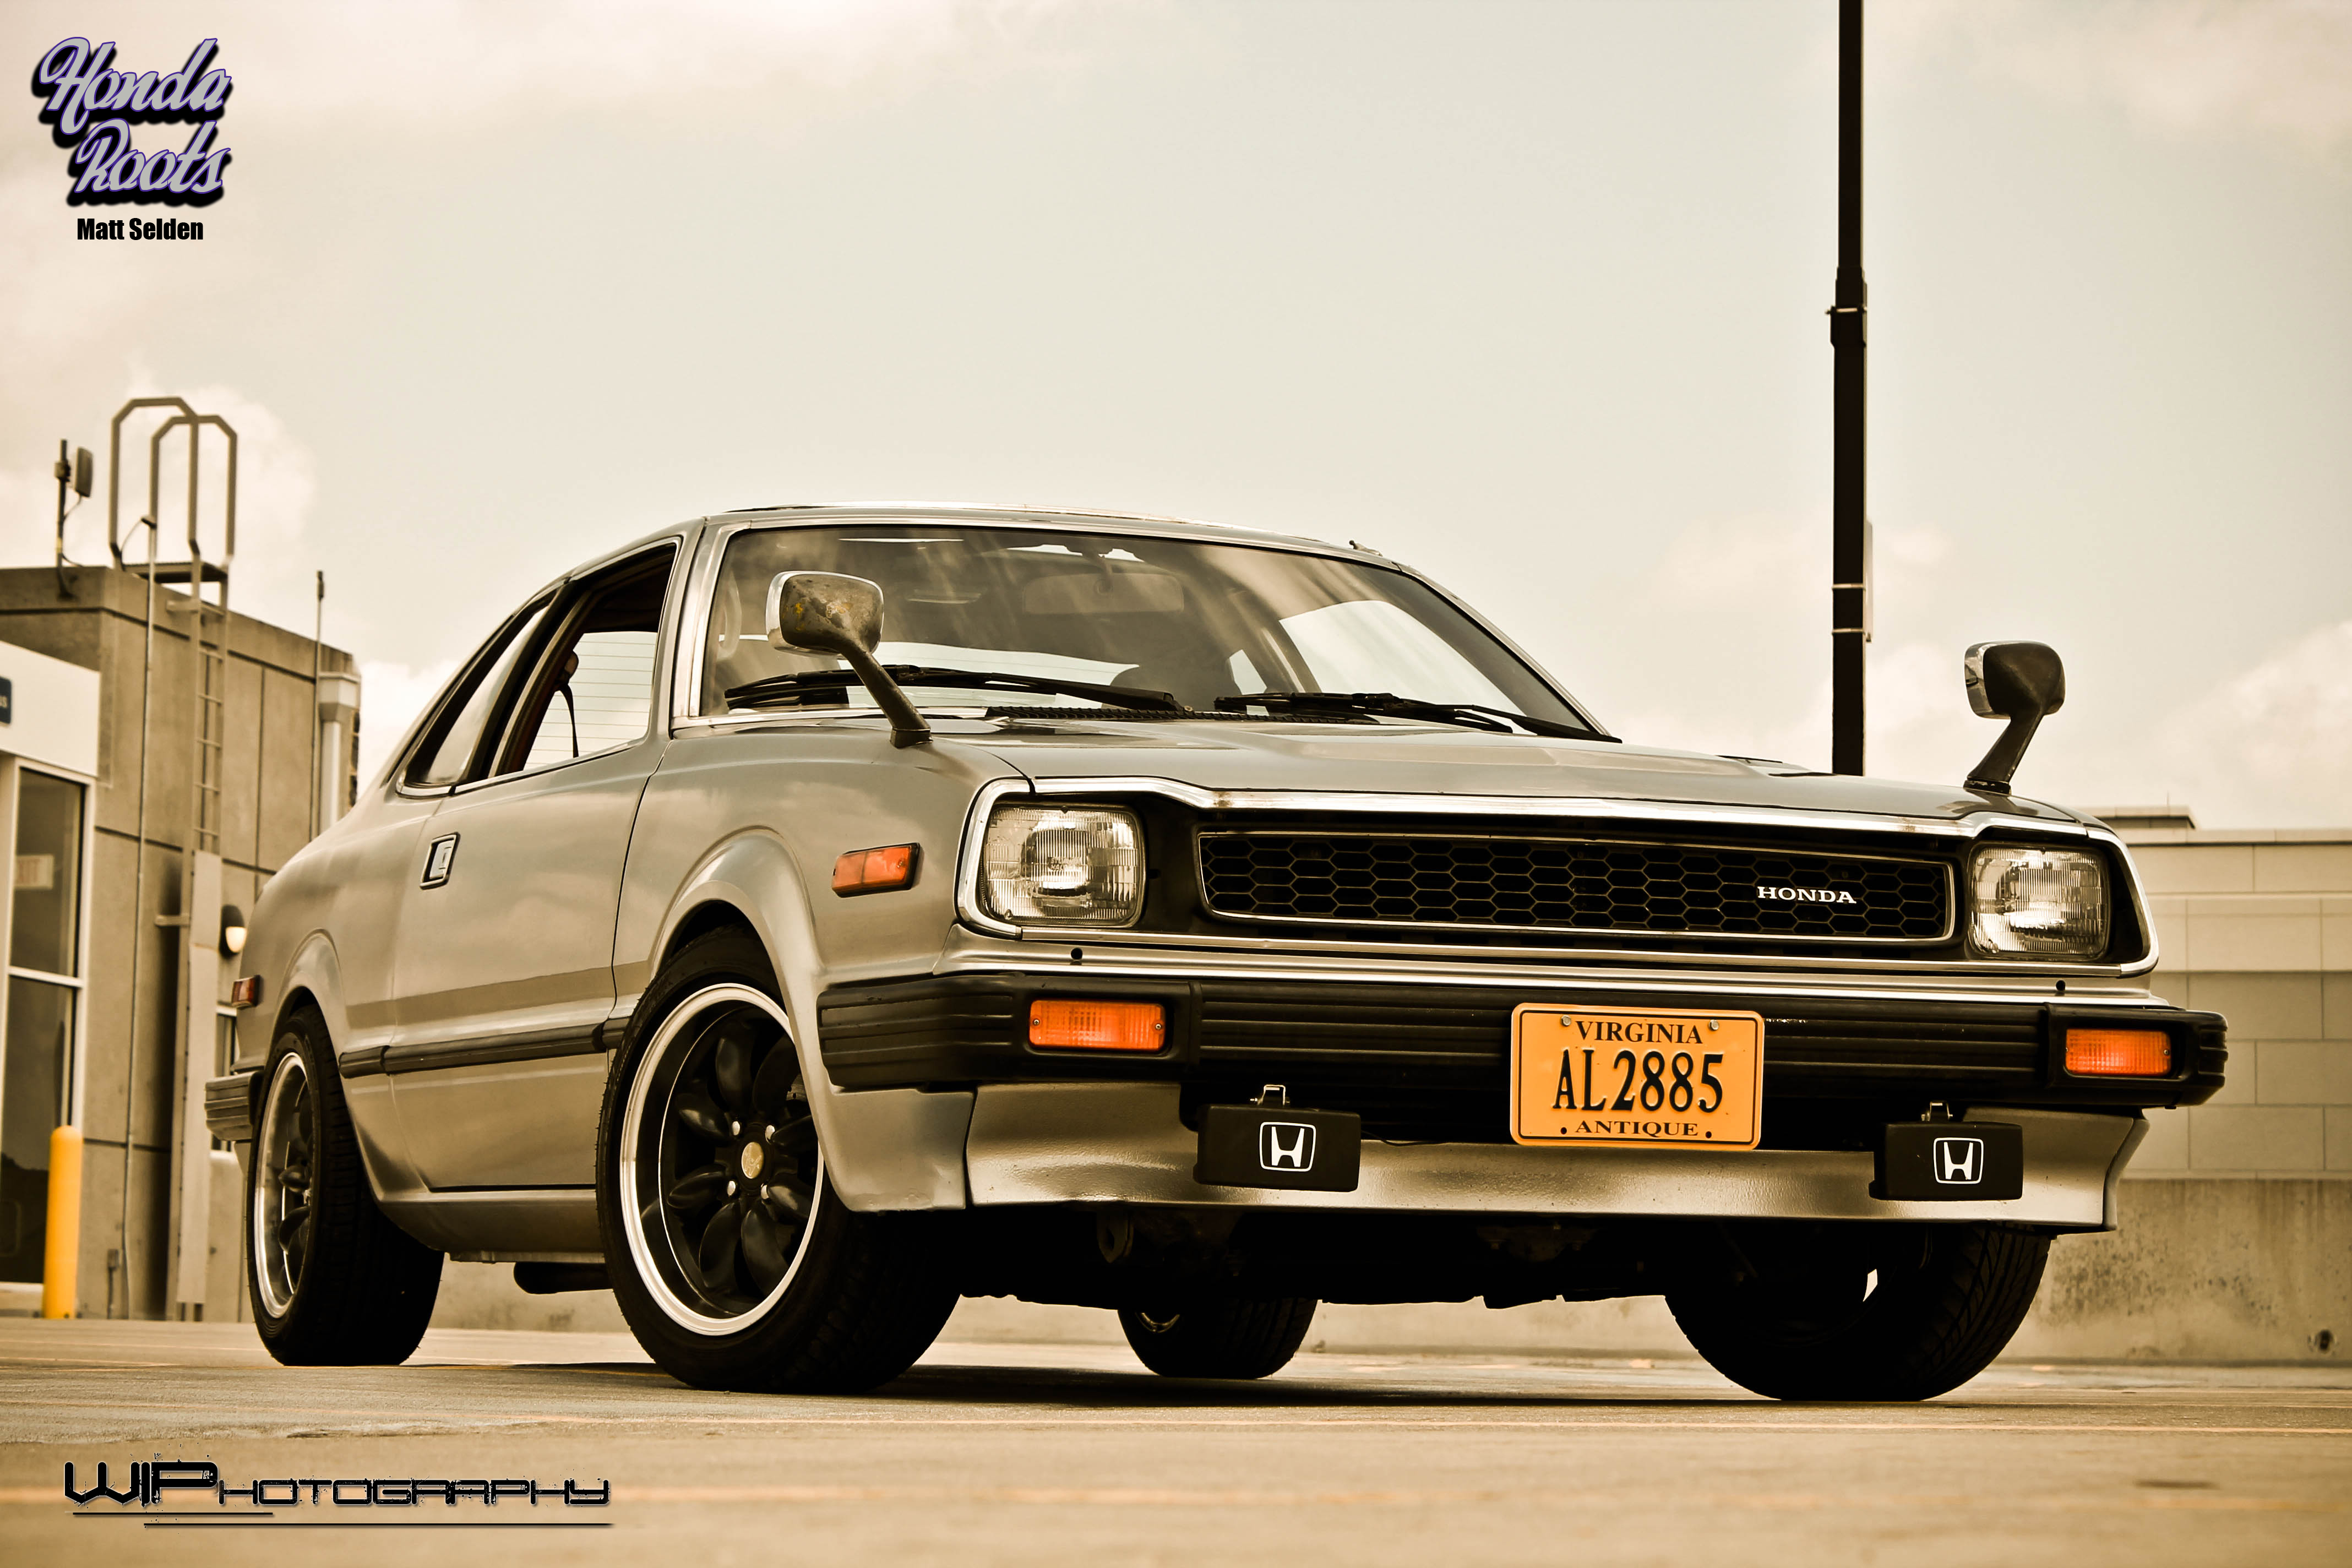 ROTM October: Matt Selden's '81 Honda Prelude